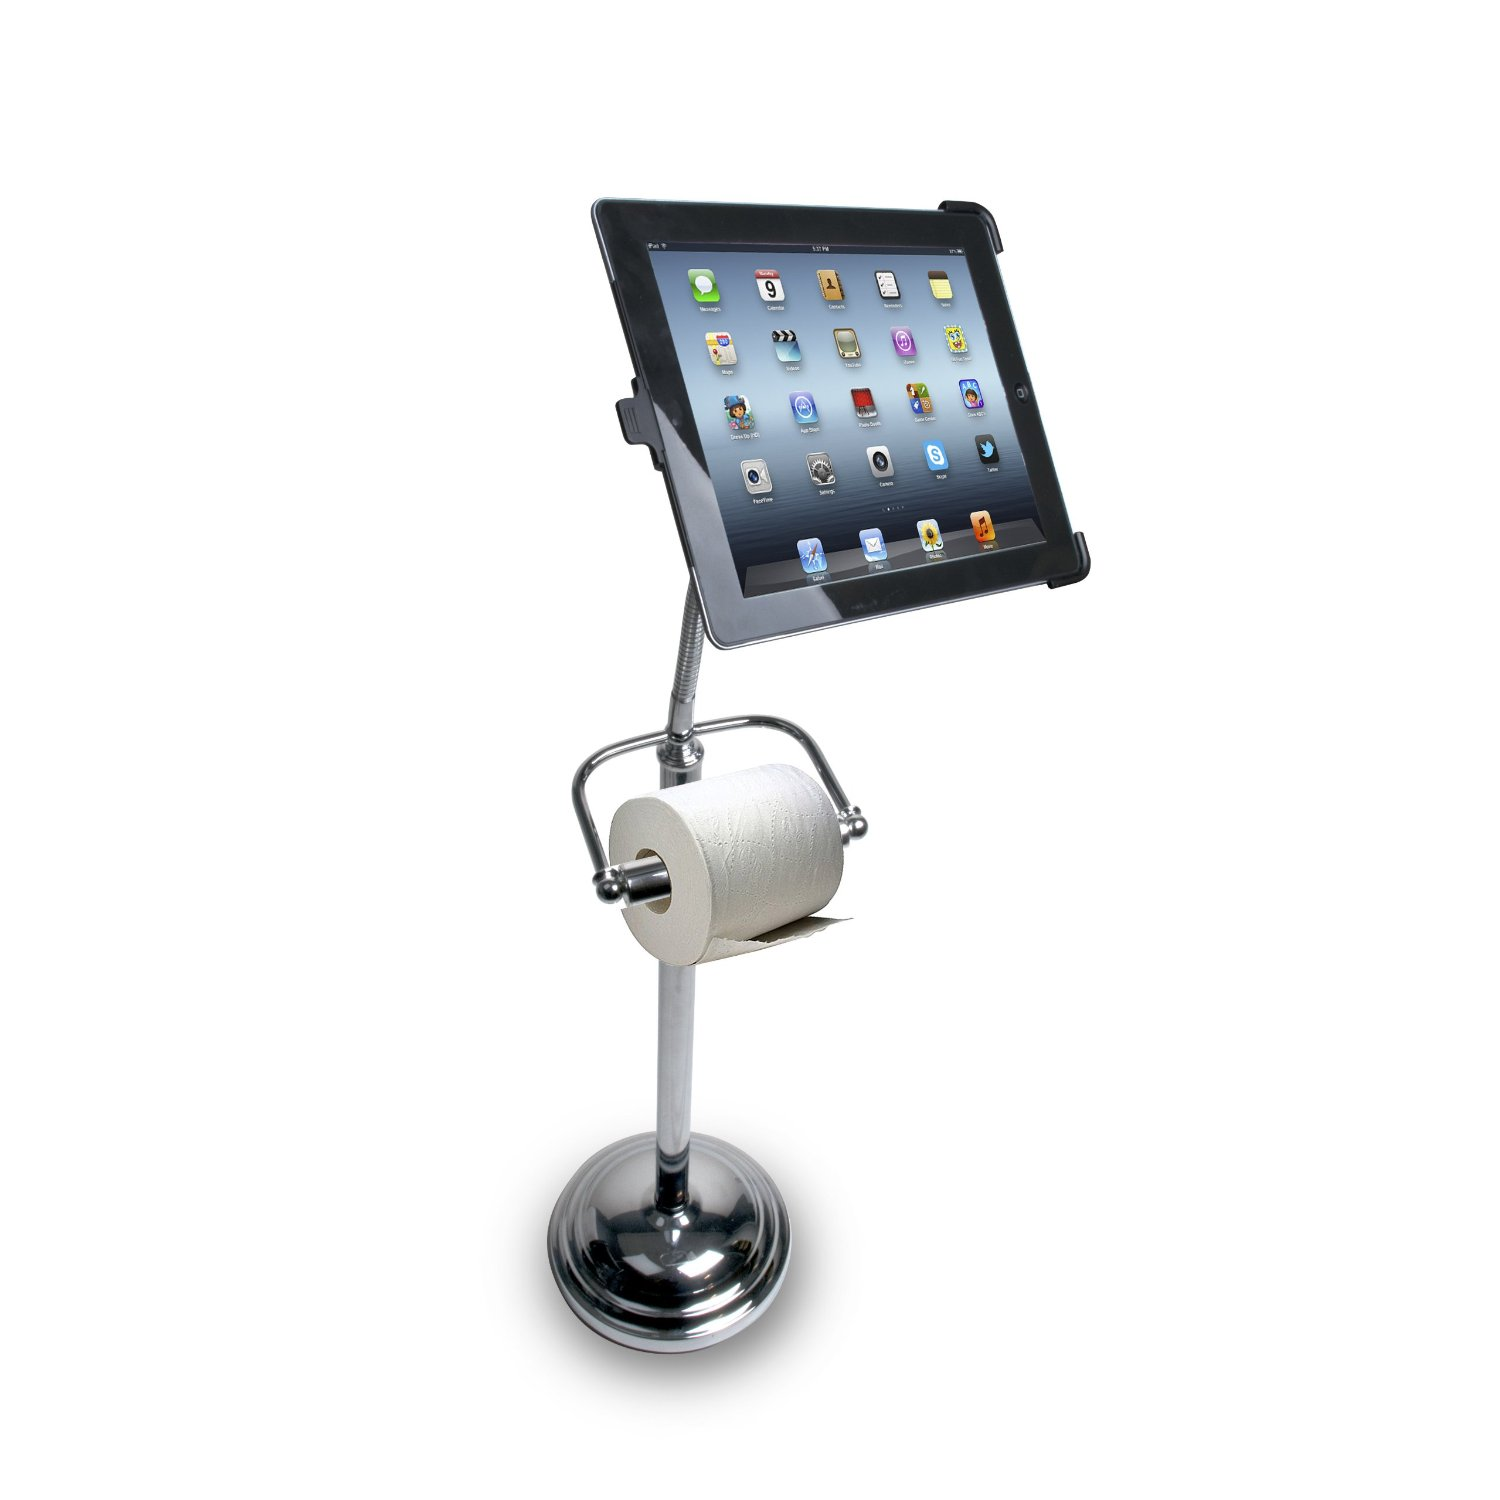 Cta Digital Pedestal Stand For Ipad Keeps You Connected In